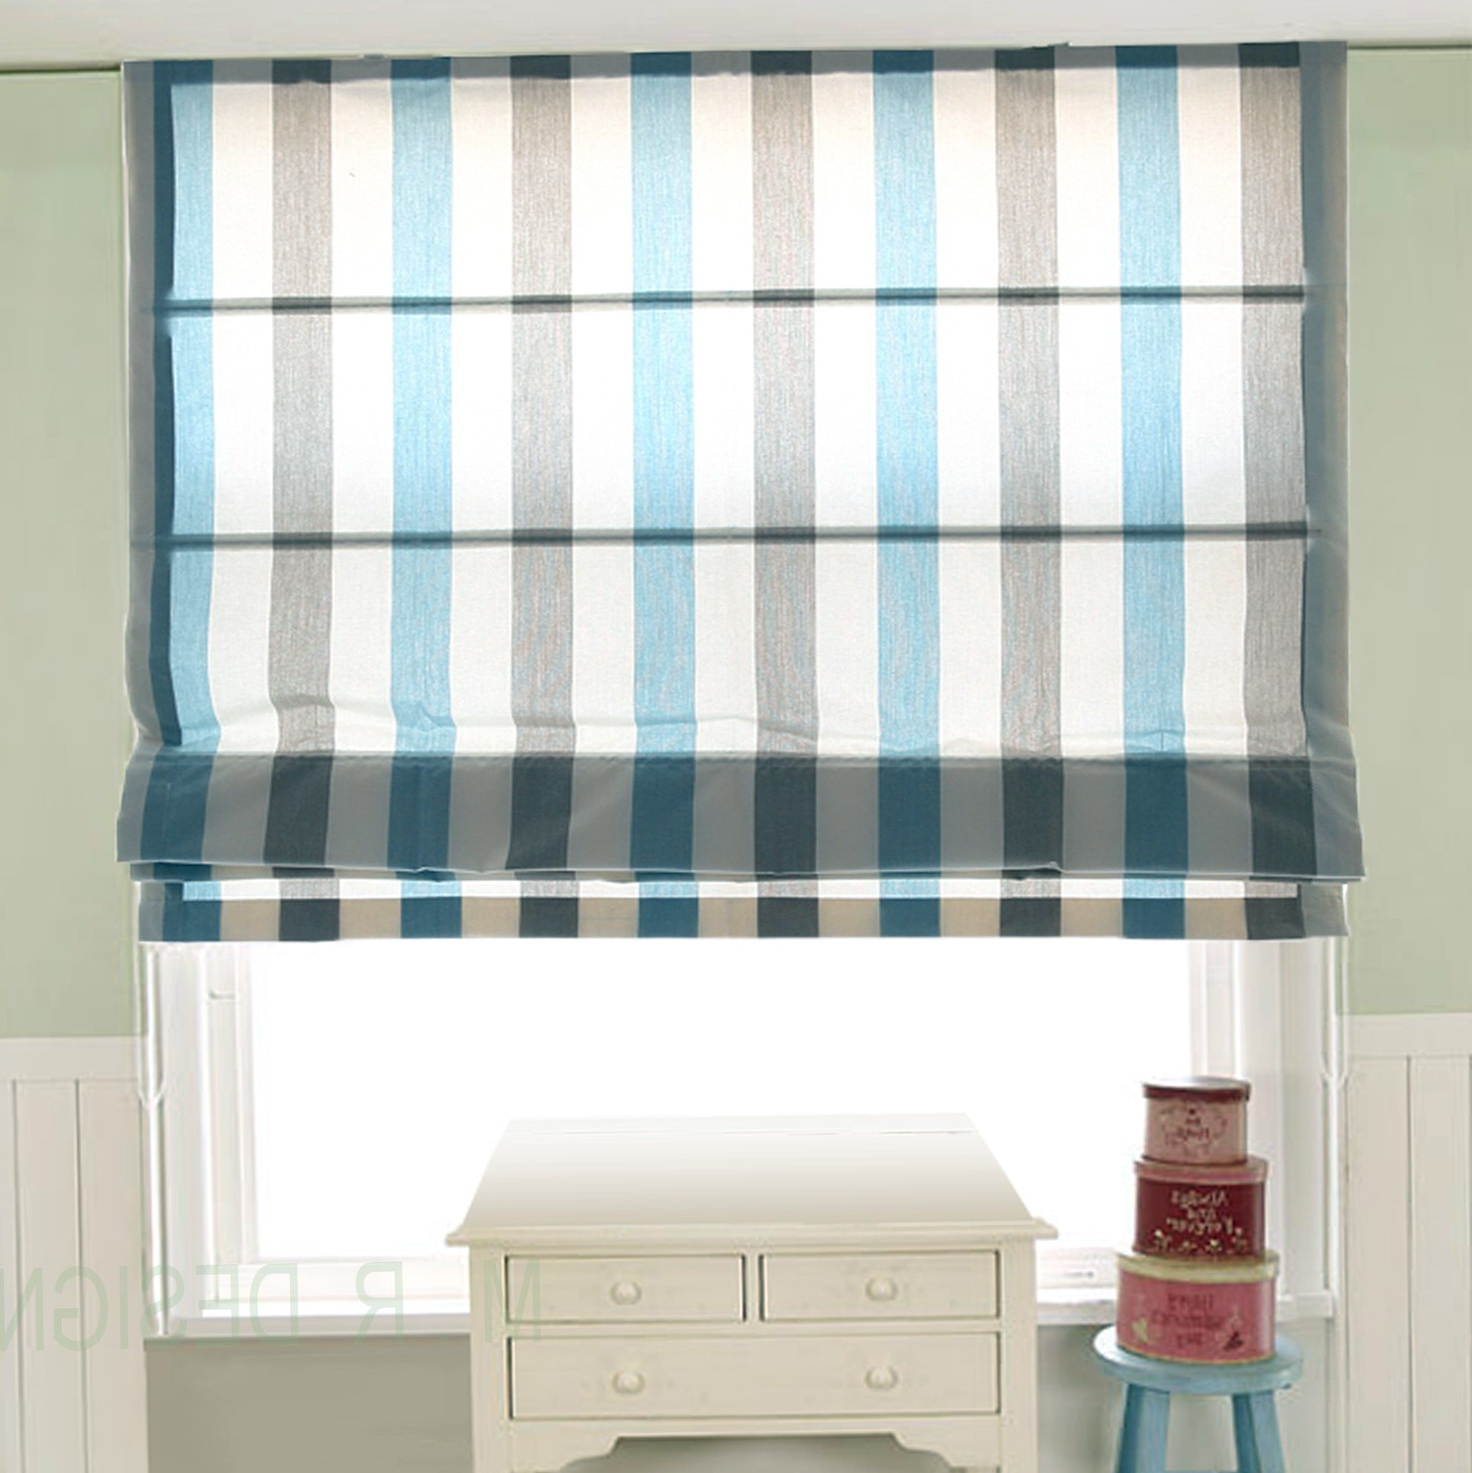 curtain com curtains white striped l gray grey pretentious greeniteconomicsummit yellow org and